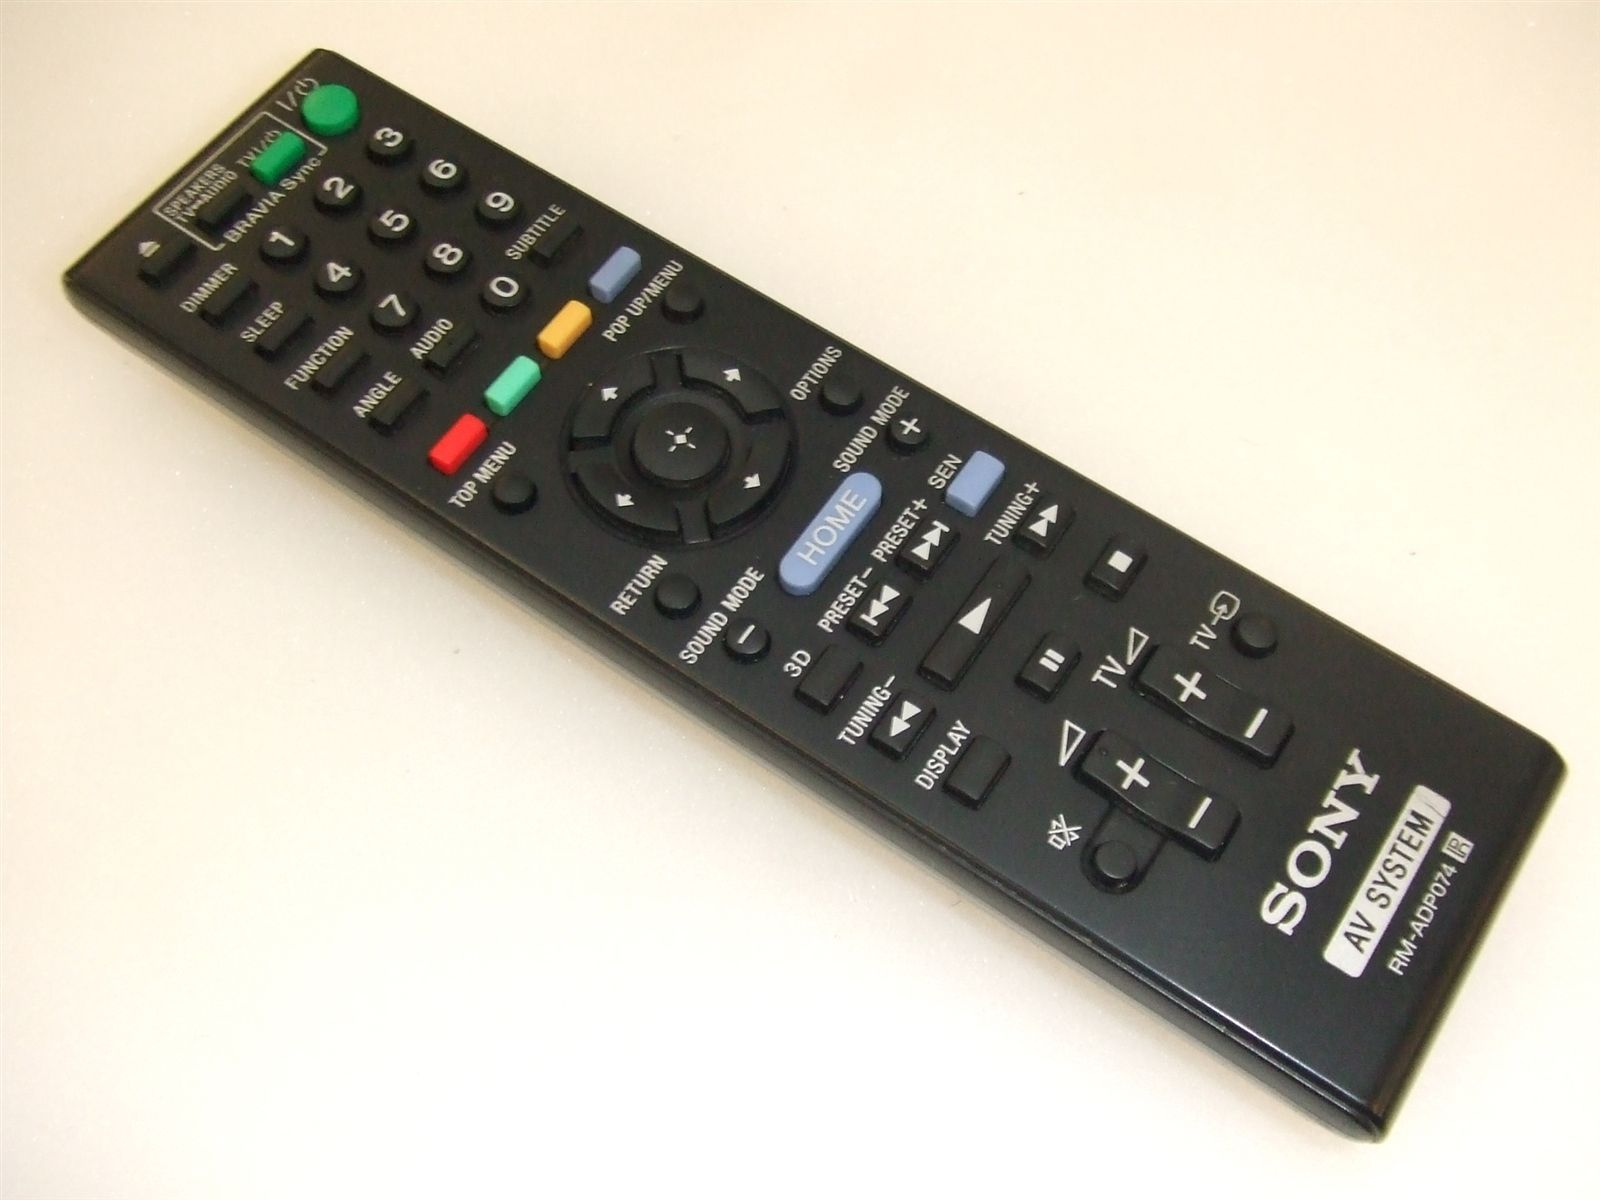 Sony Remote Commander (RM-ADP074) pults